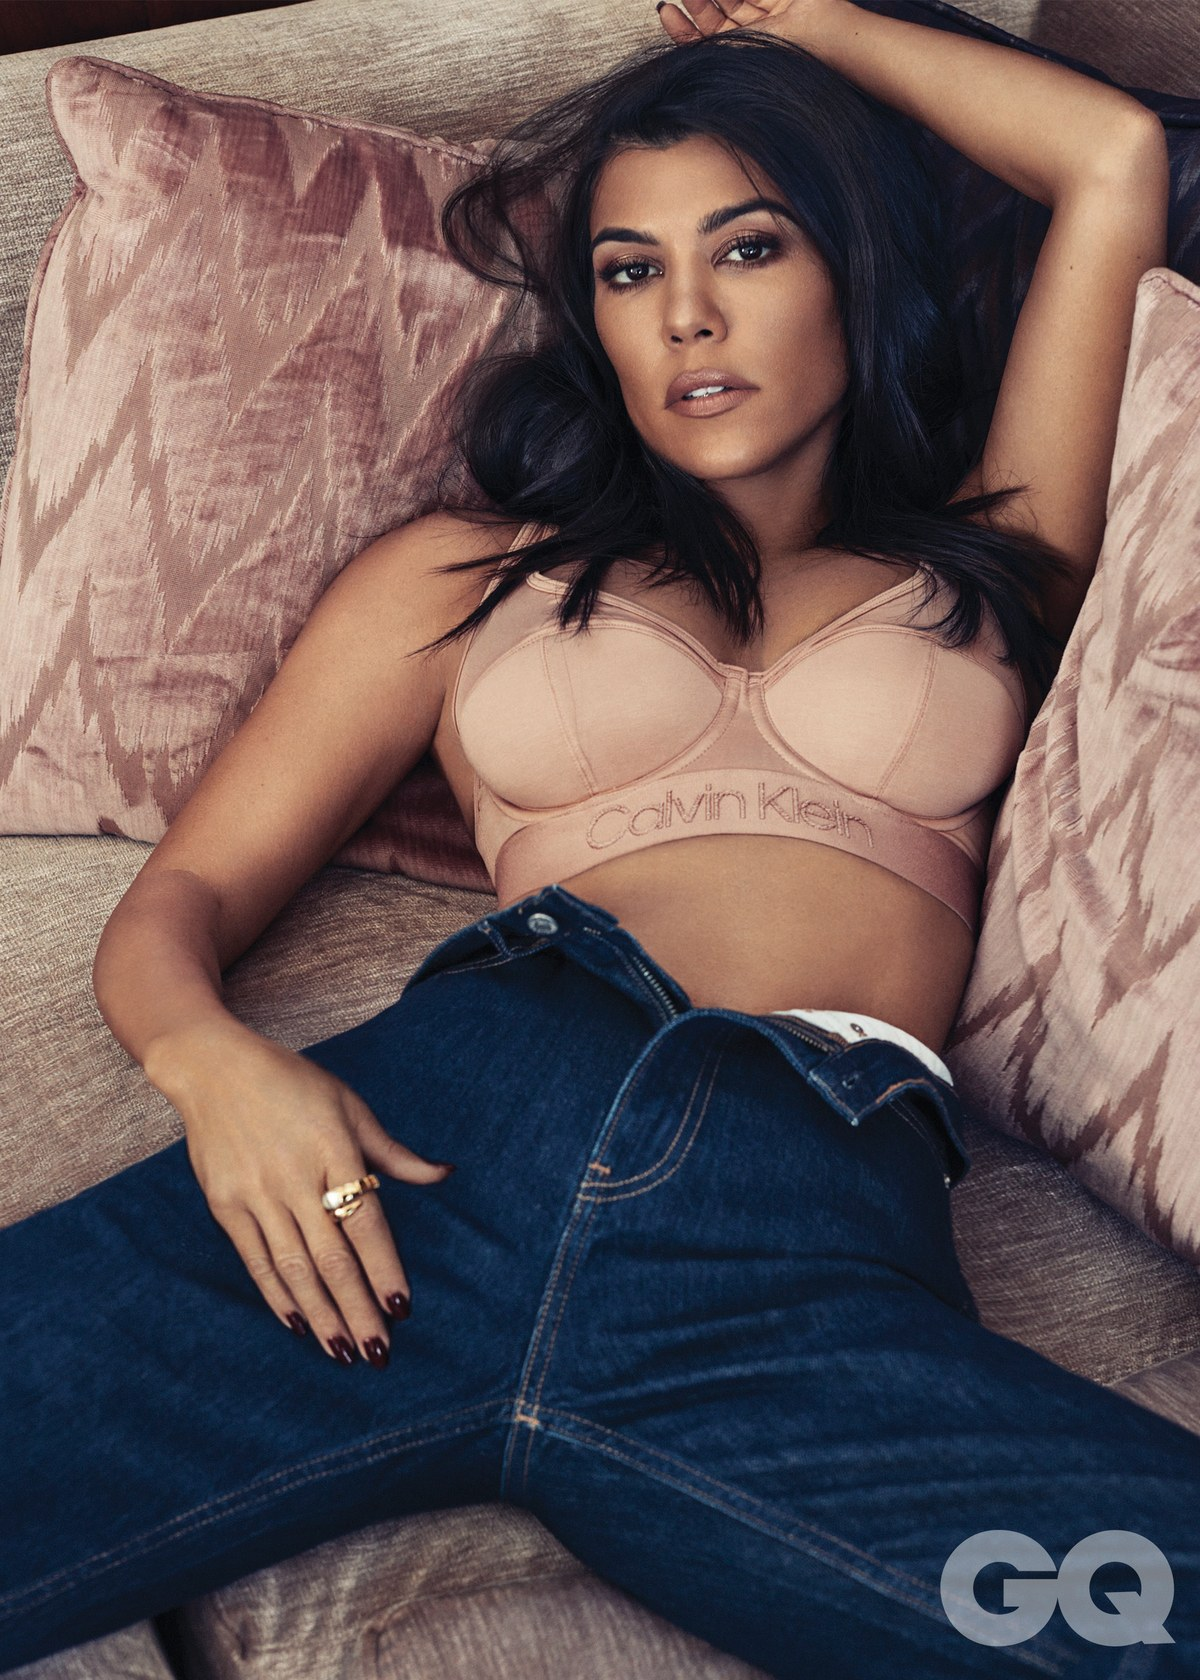 Kourtney Kardashian by Michael Schwartz for GQ Mexico December 2018 (2).jpg